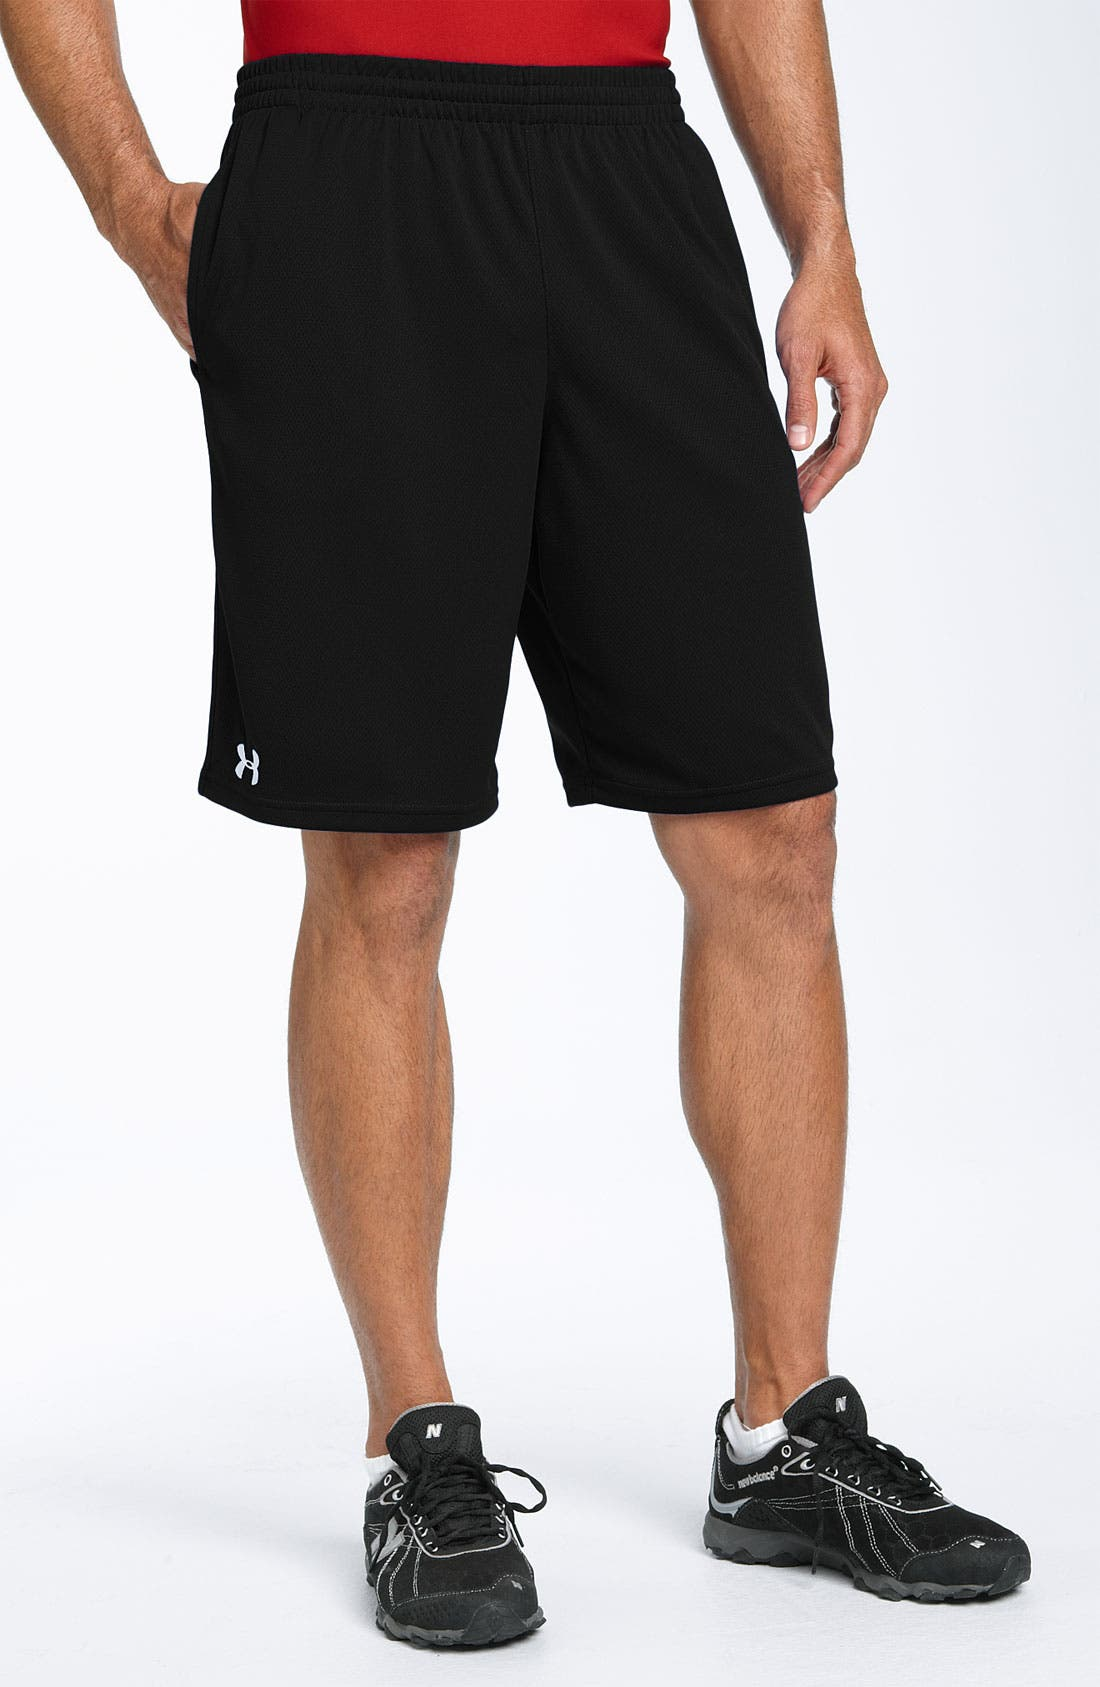 Alternate Image 1 Selected - Under Armour 'Flex' HeatGear® Mesh Shorts